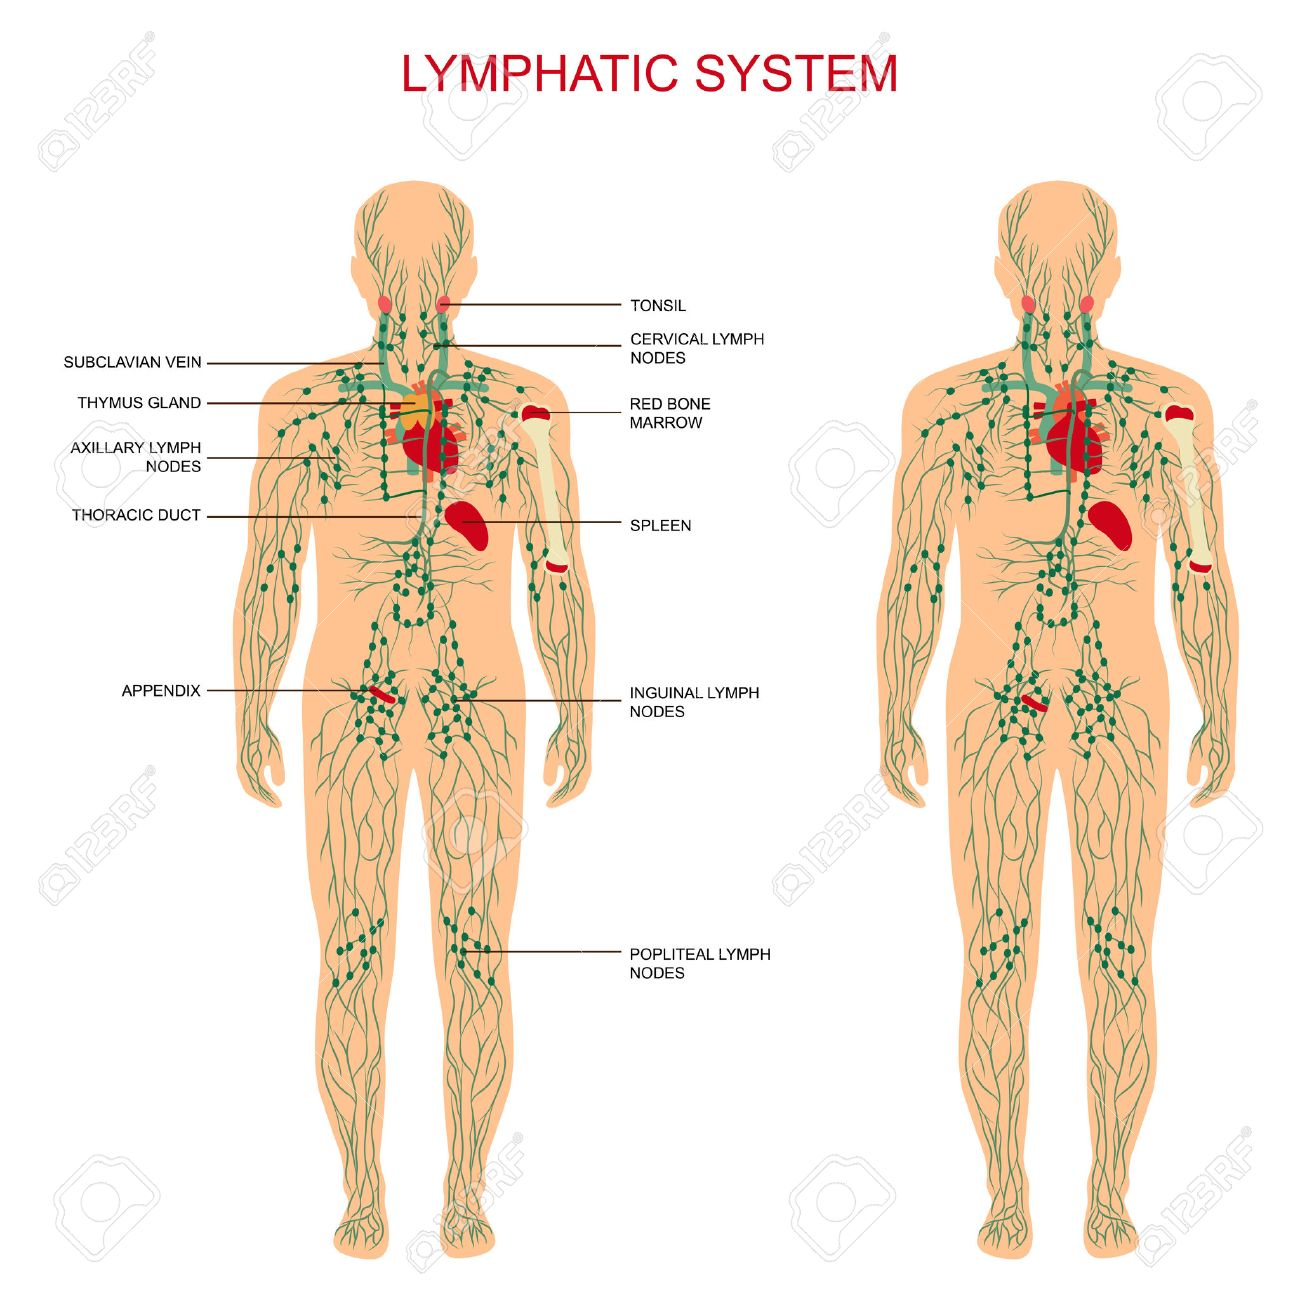 Workbooks lymphatic system worksheets : Anatomy Lymphatic System Images - Human Anatomy Learning